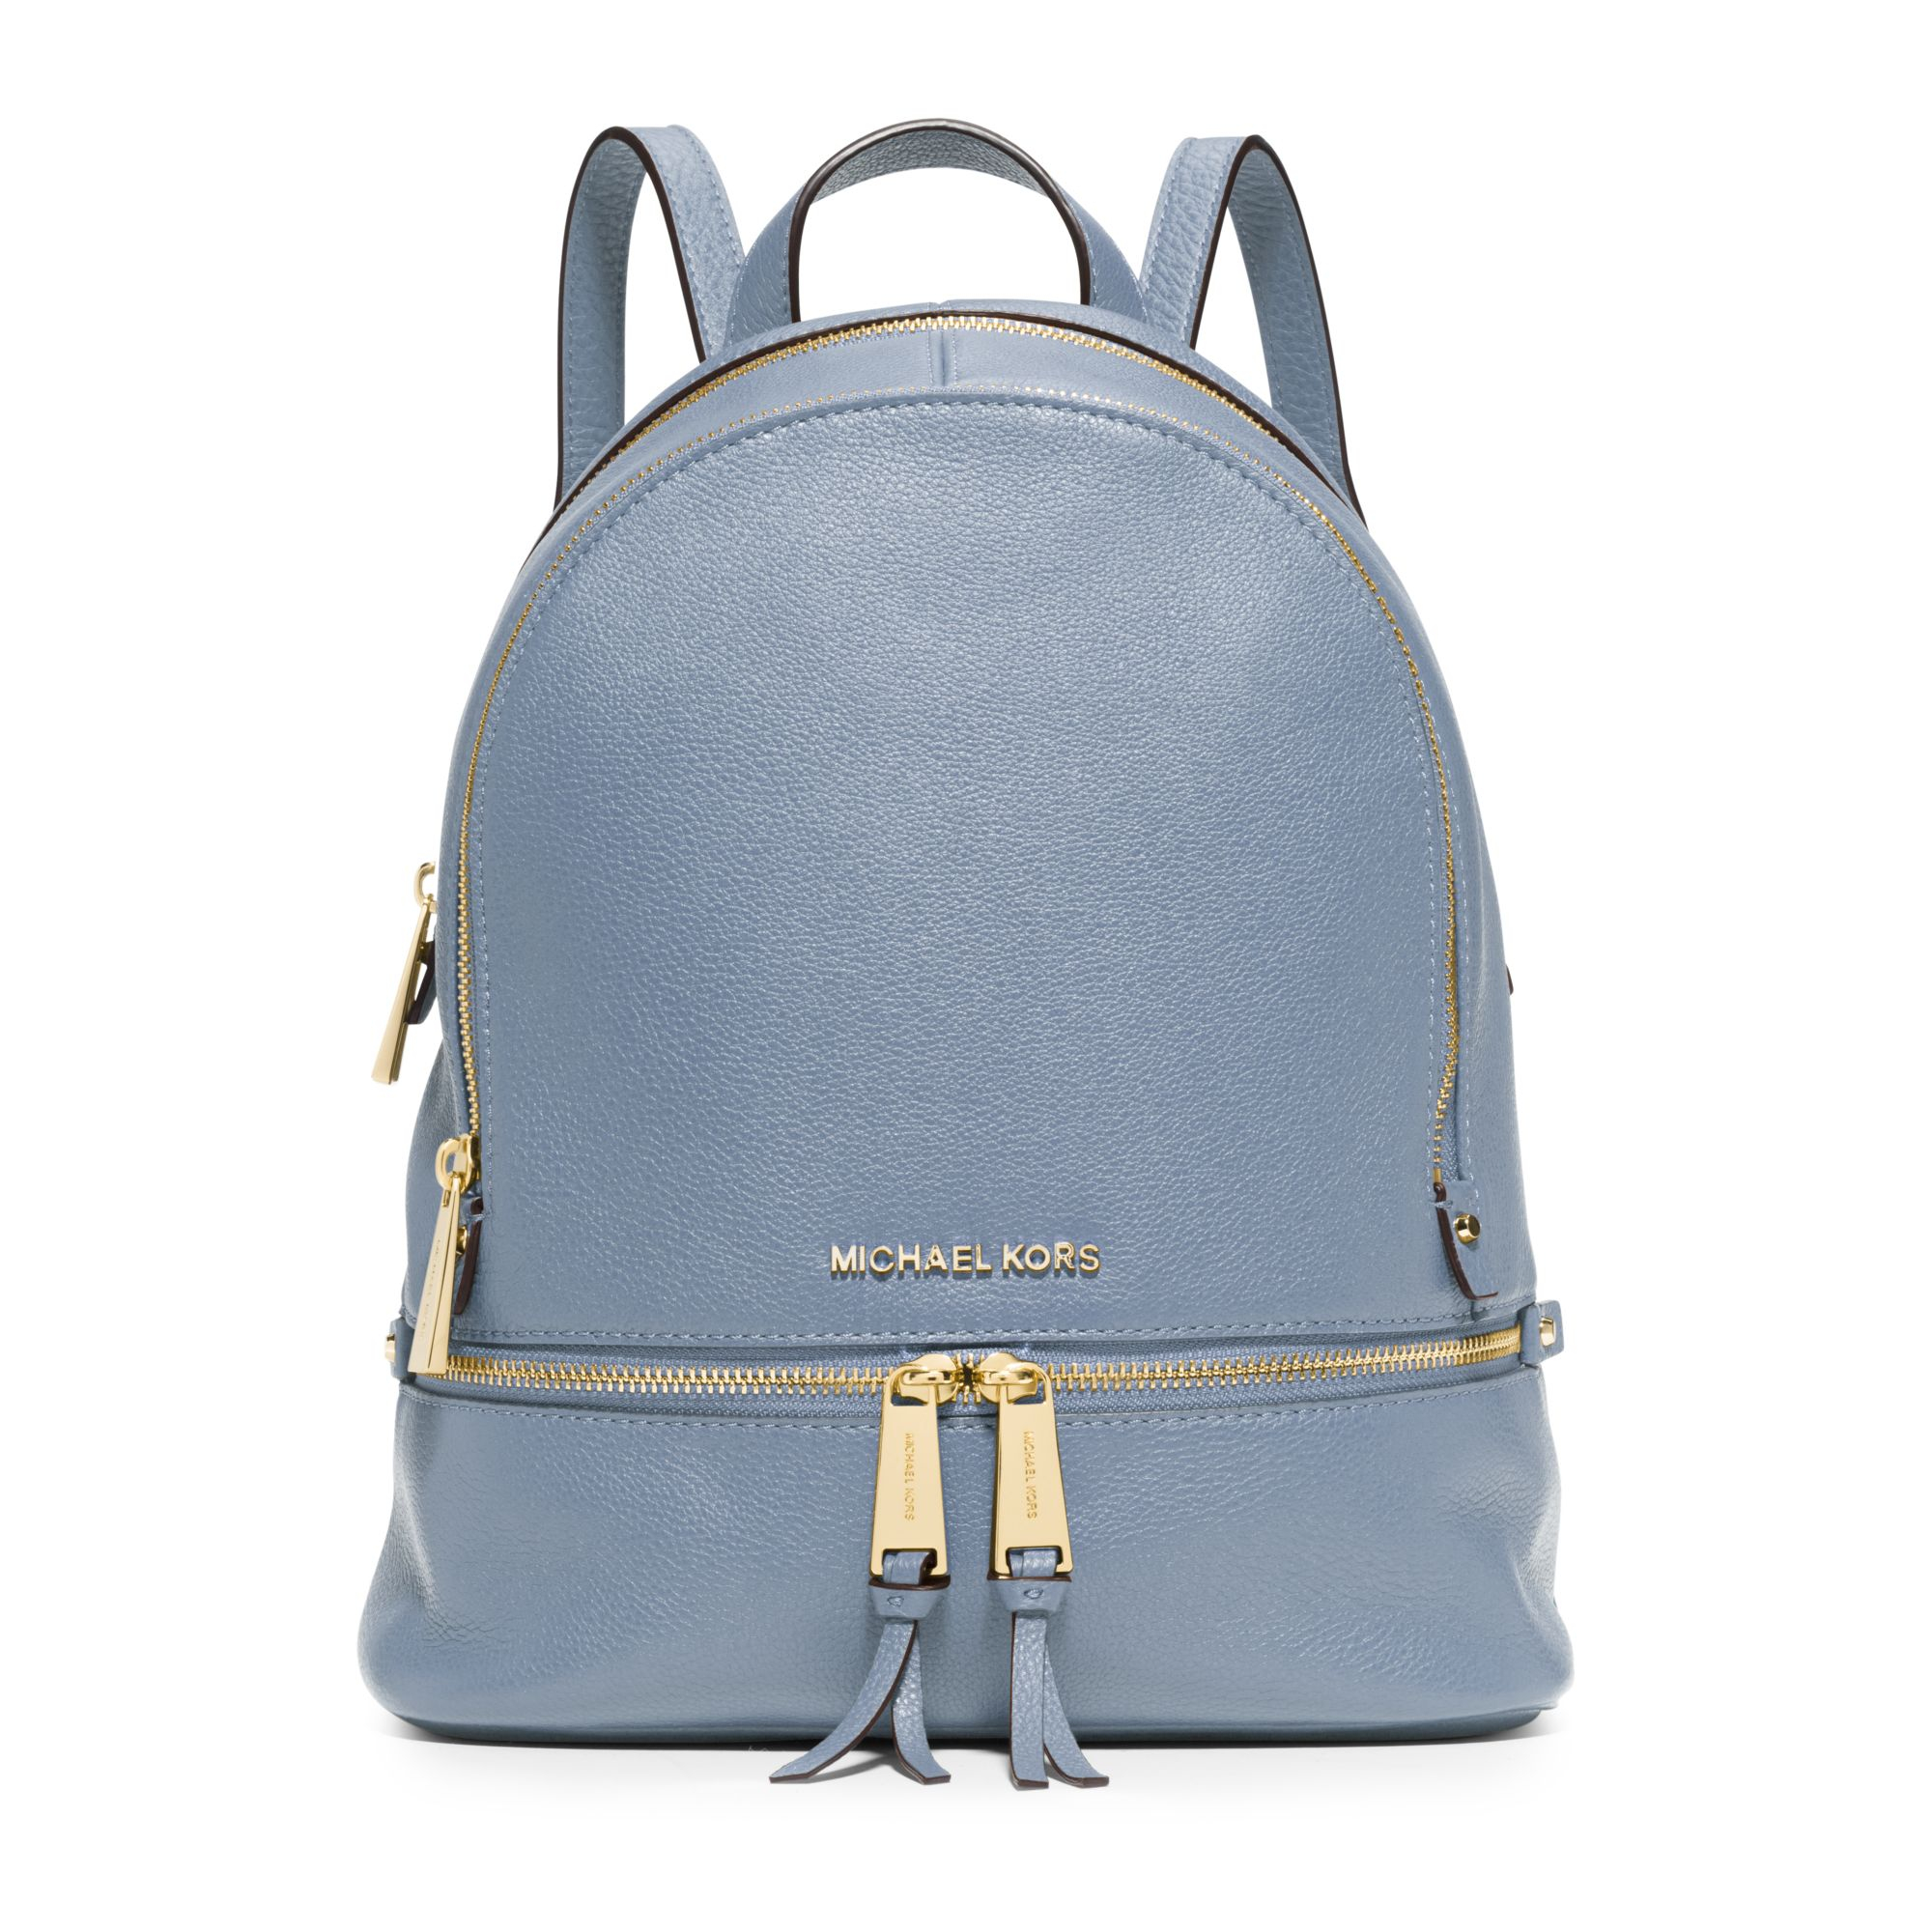 michael kors rhea small leather backpack in blue lyst. Black Bedroom Furniture Sets. Home Design Ideas